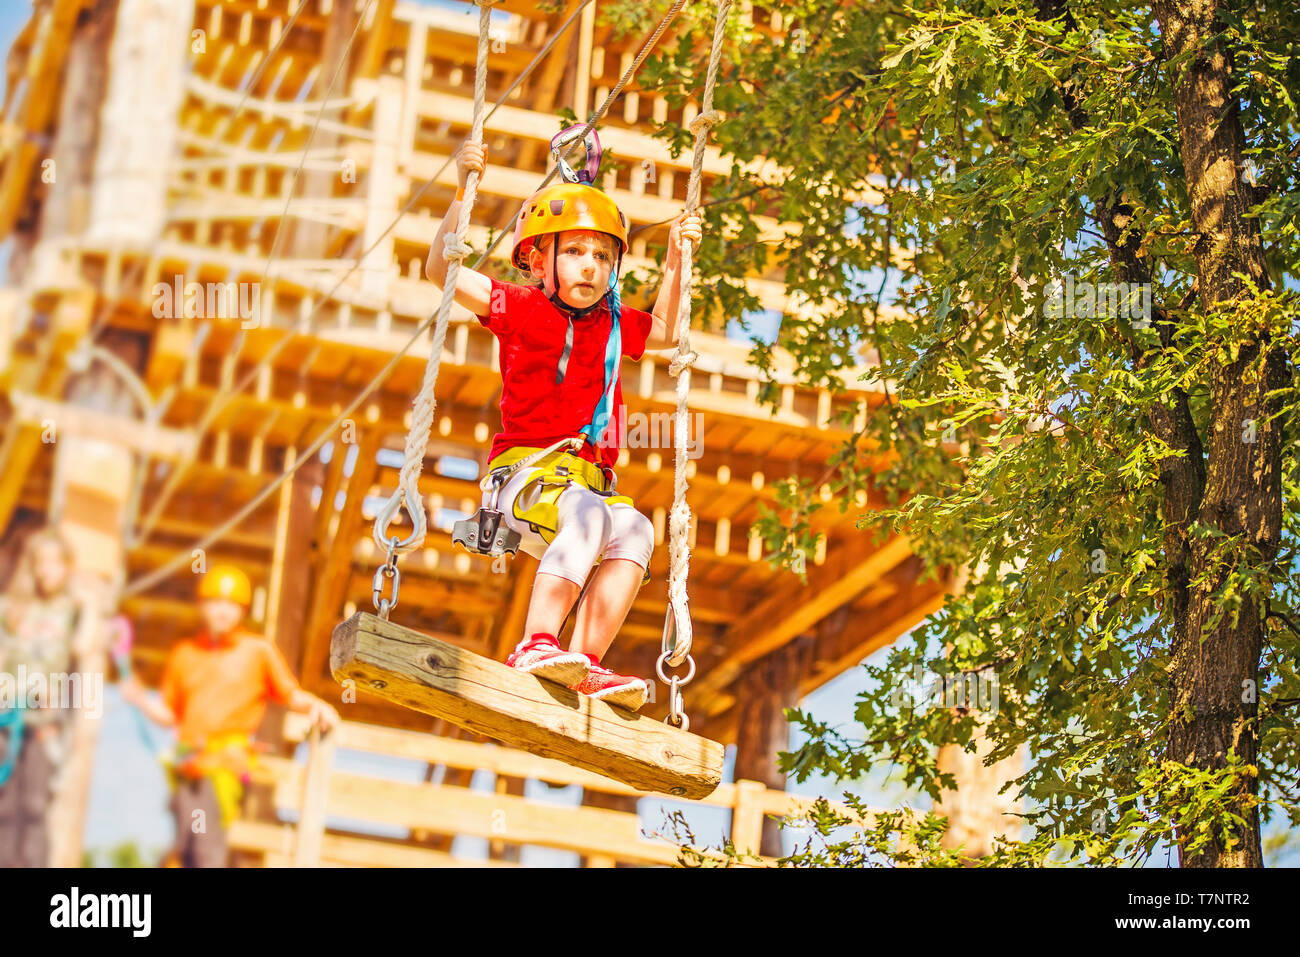 Little caucasian girl using a zip line in a rope playground structure. - Stock Image